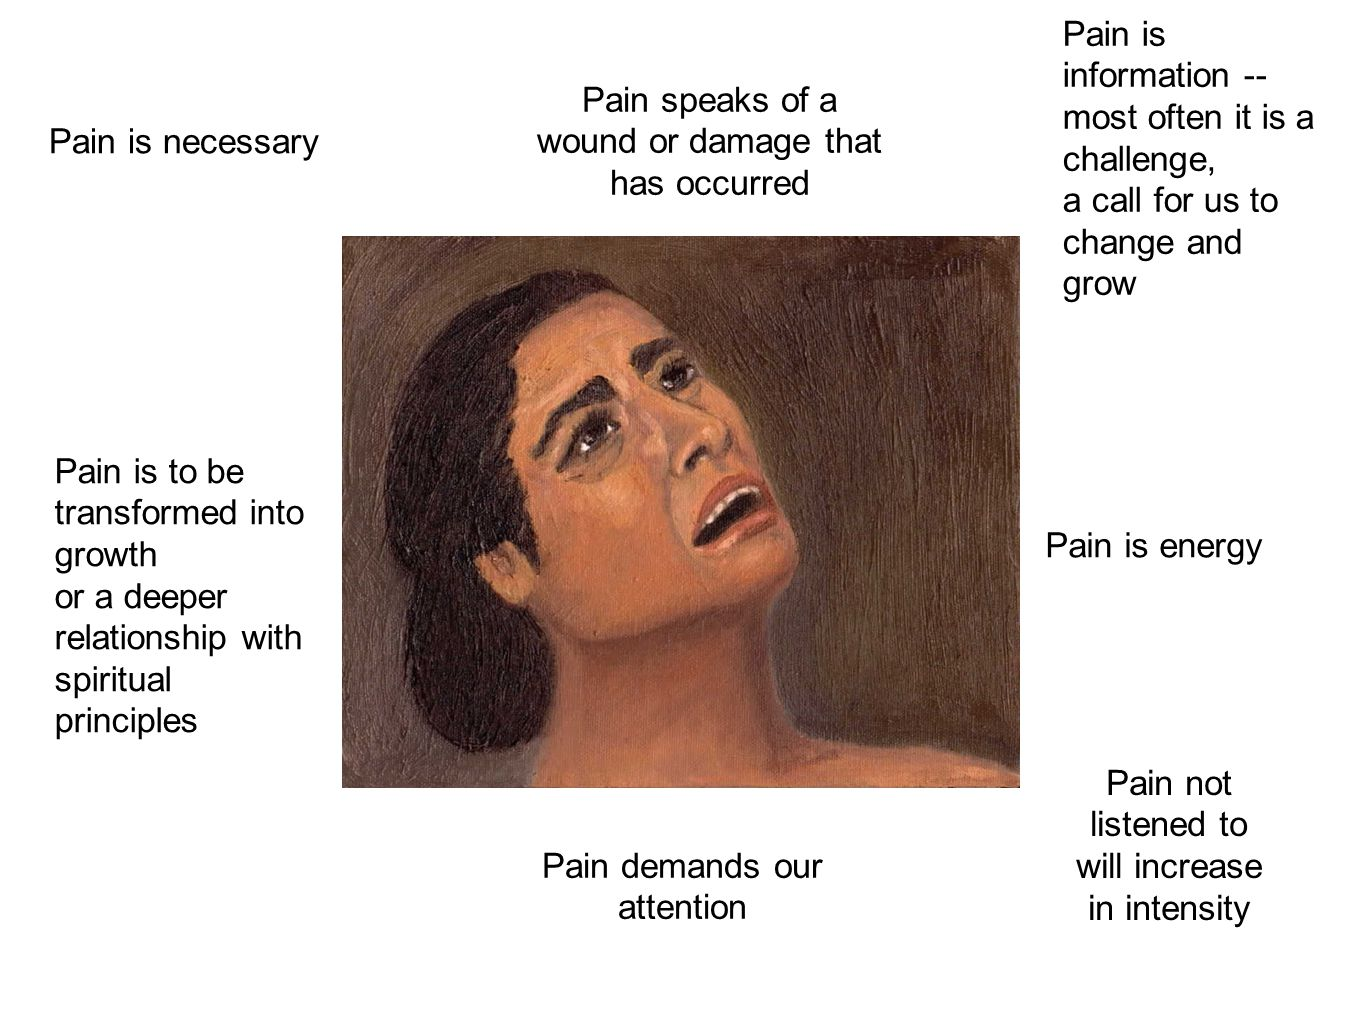 Pain is information -- most often it is a challenge, a call for us to change and grow Pain demands our attention Pain is to be transformed into growth or a deeper relationship with spiritual principles Pain is energy Pain not listened to will increase in intensity Pain is necessary Pain speaks of a wound or damage that has occurred